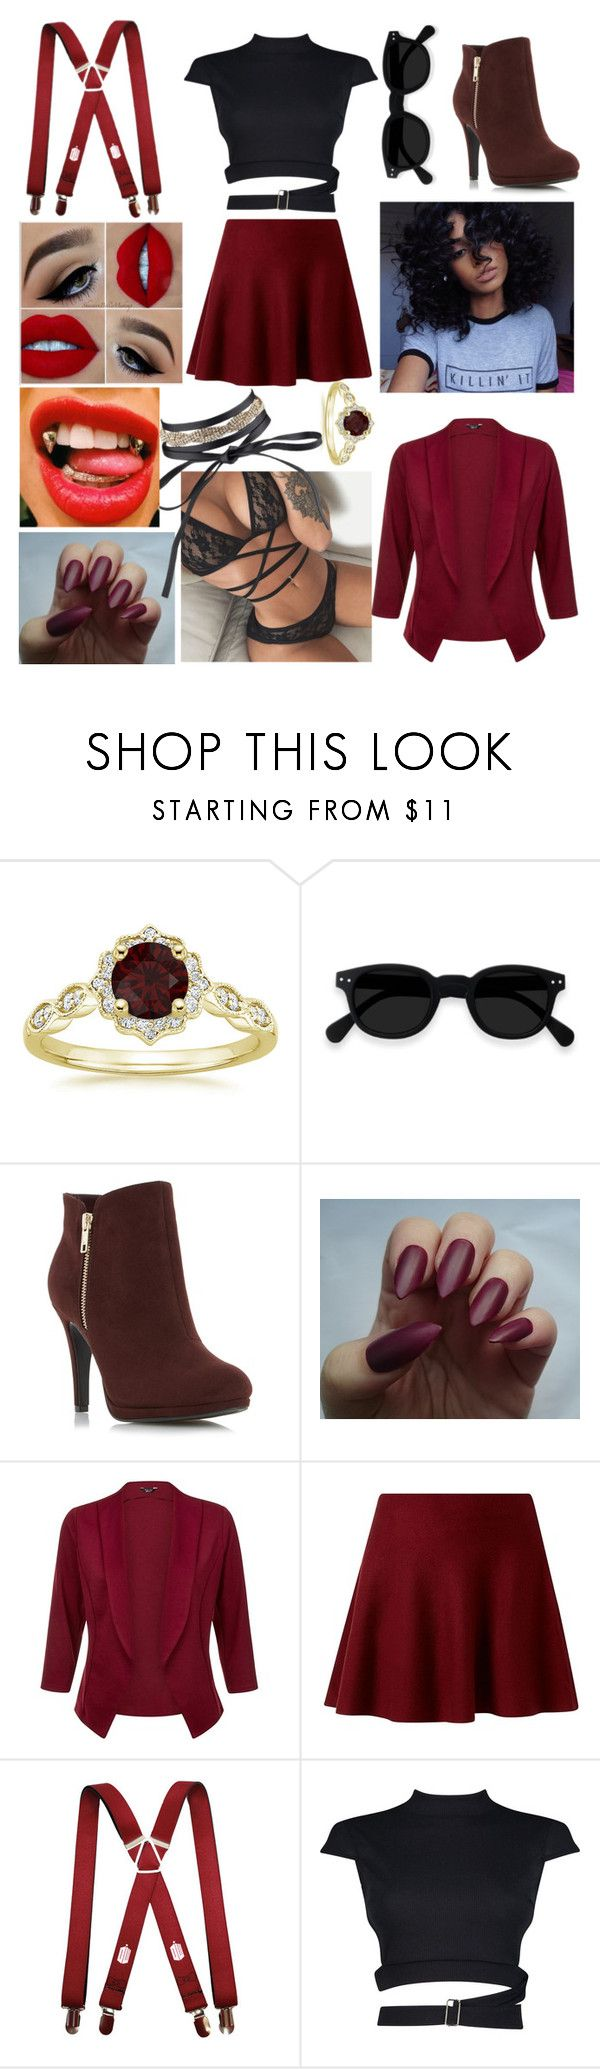 """Light My Body Up - David Guetta ft Nicki Minaj & Lil Wayne"" by practicallysatan ❤ liked on Polyvore featuring Boohoo"